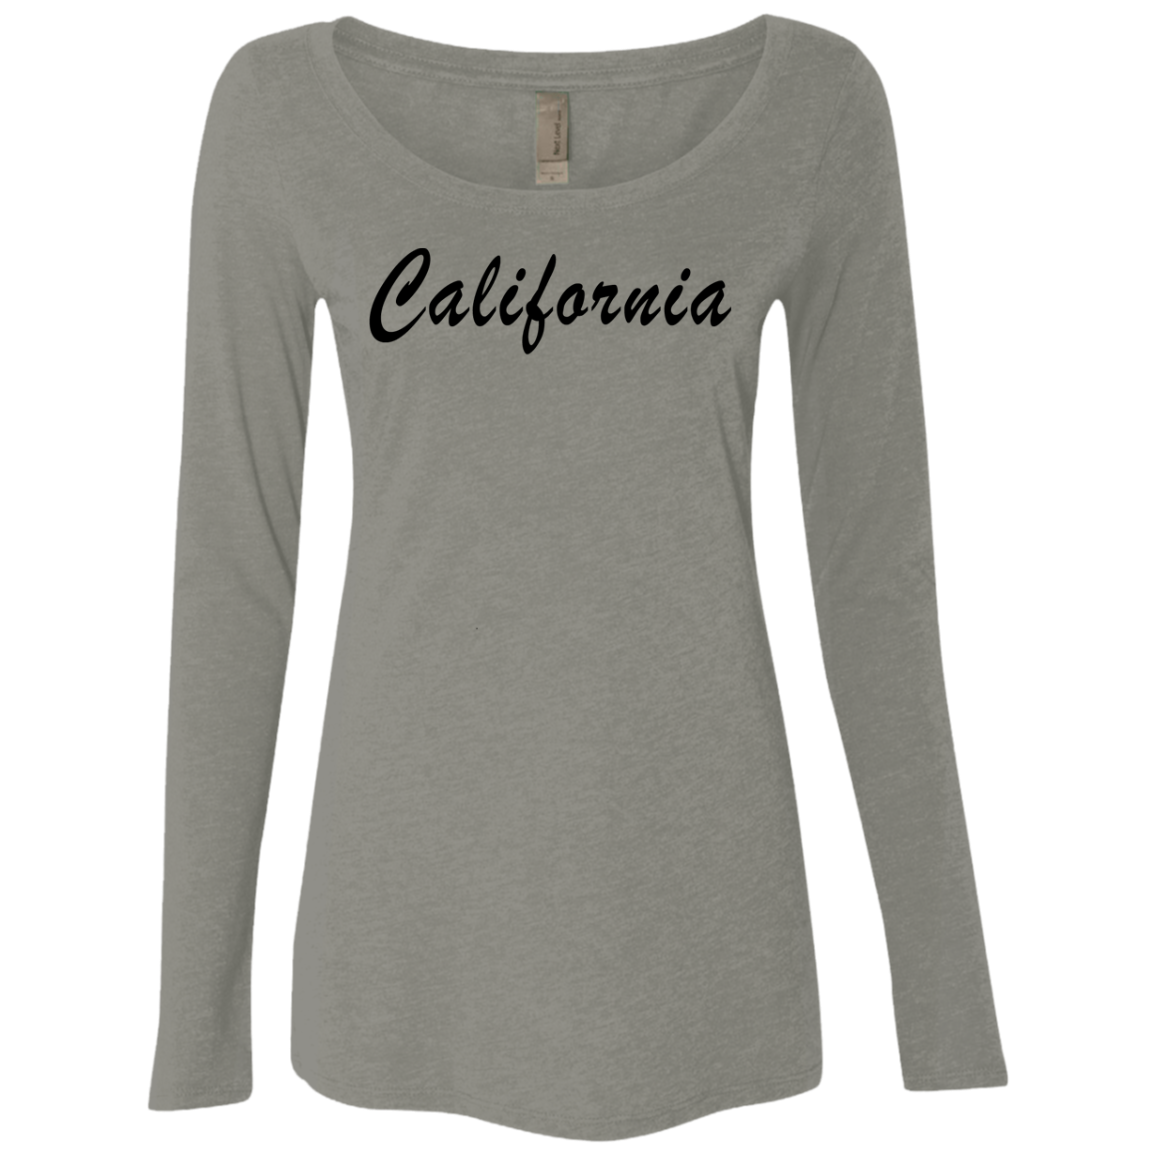 California Women's Long Sleeve Tee